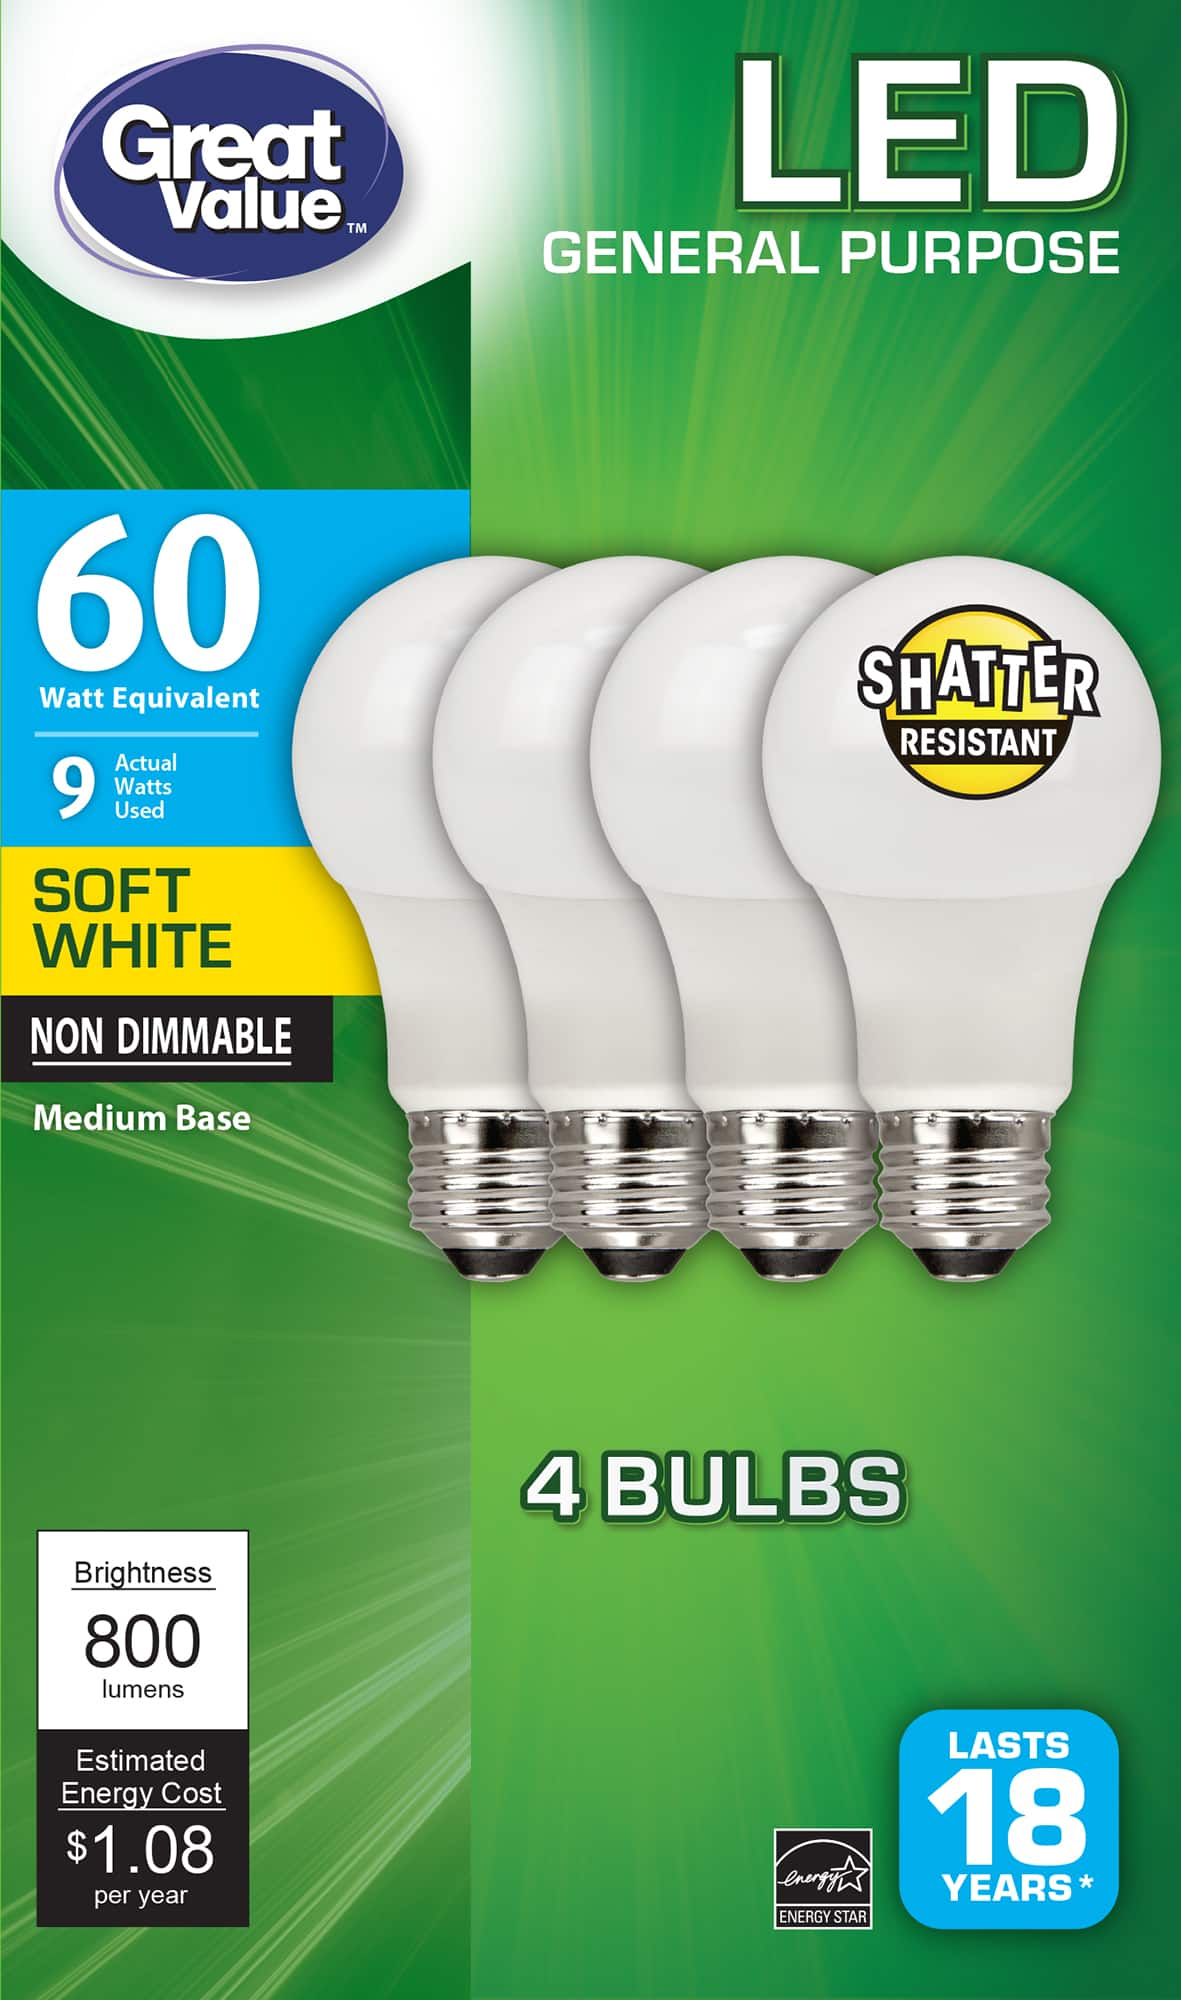 Walmart GV 4 pack 60W non-dimmable LED light bulb YMMV $2.88 Clearance